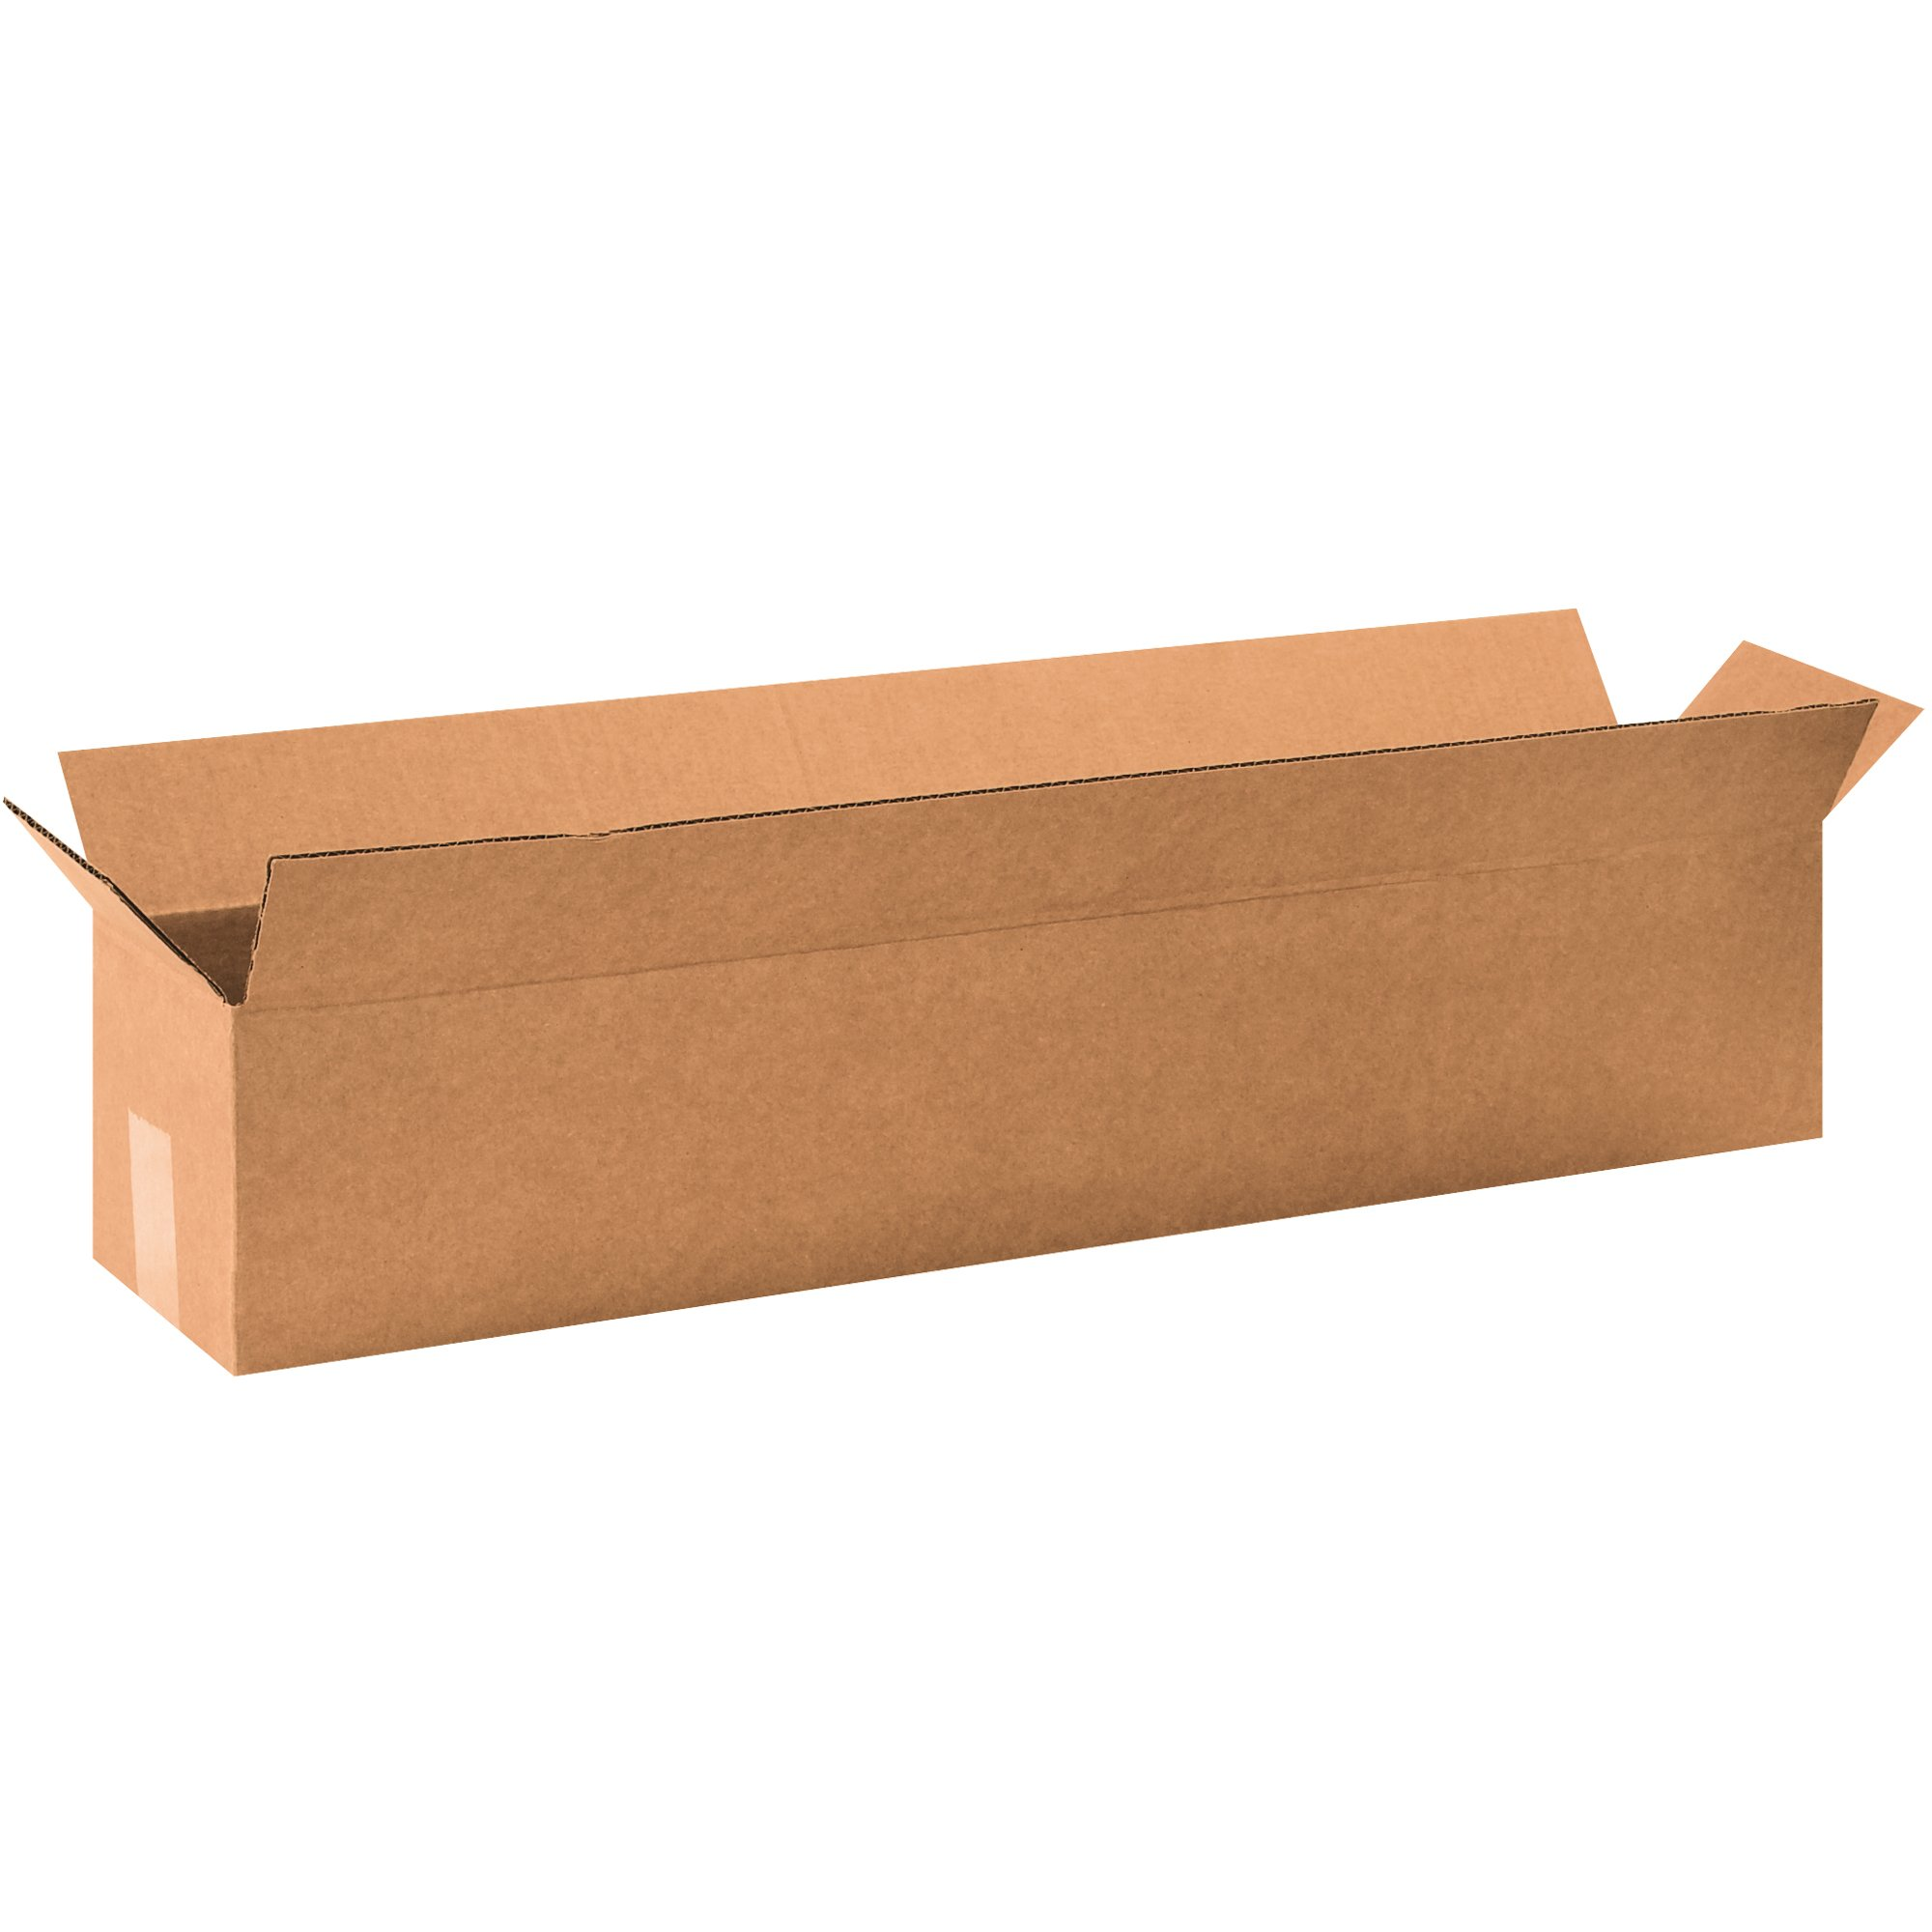 """BOX USA 25 Pack of Long Corrugated Cardboard Boxes, 32"""" L x 6"""" W x 6"""" H, Kraft, Shipping, Packing and Moving"""